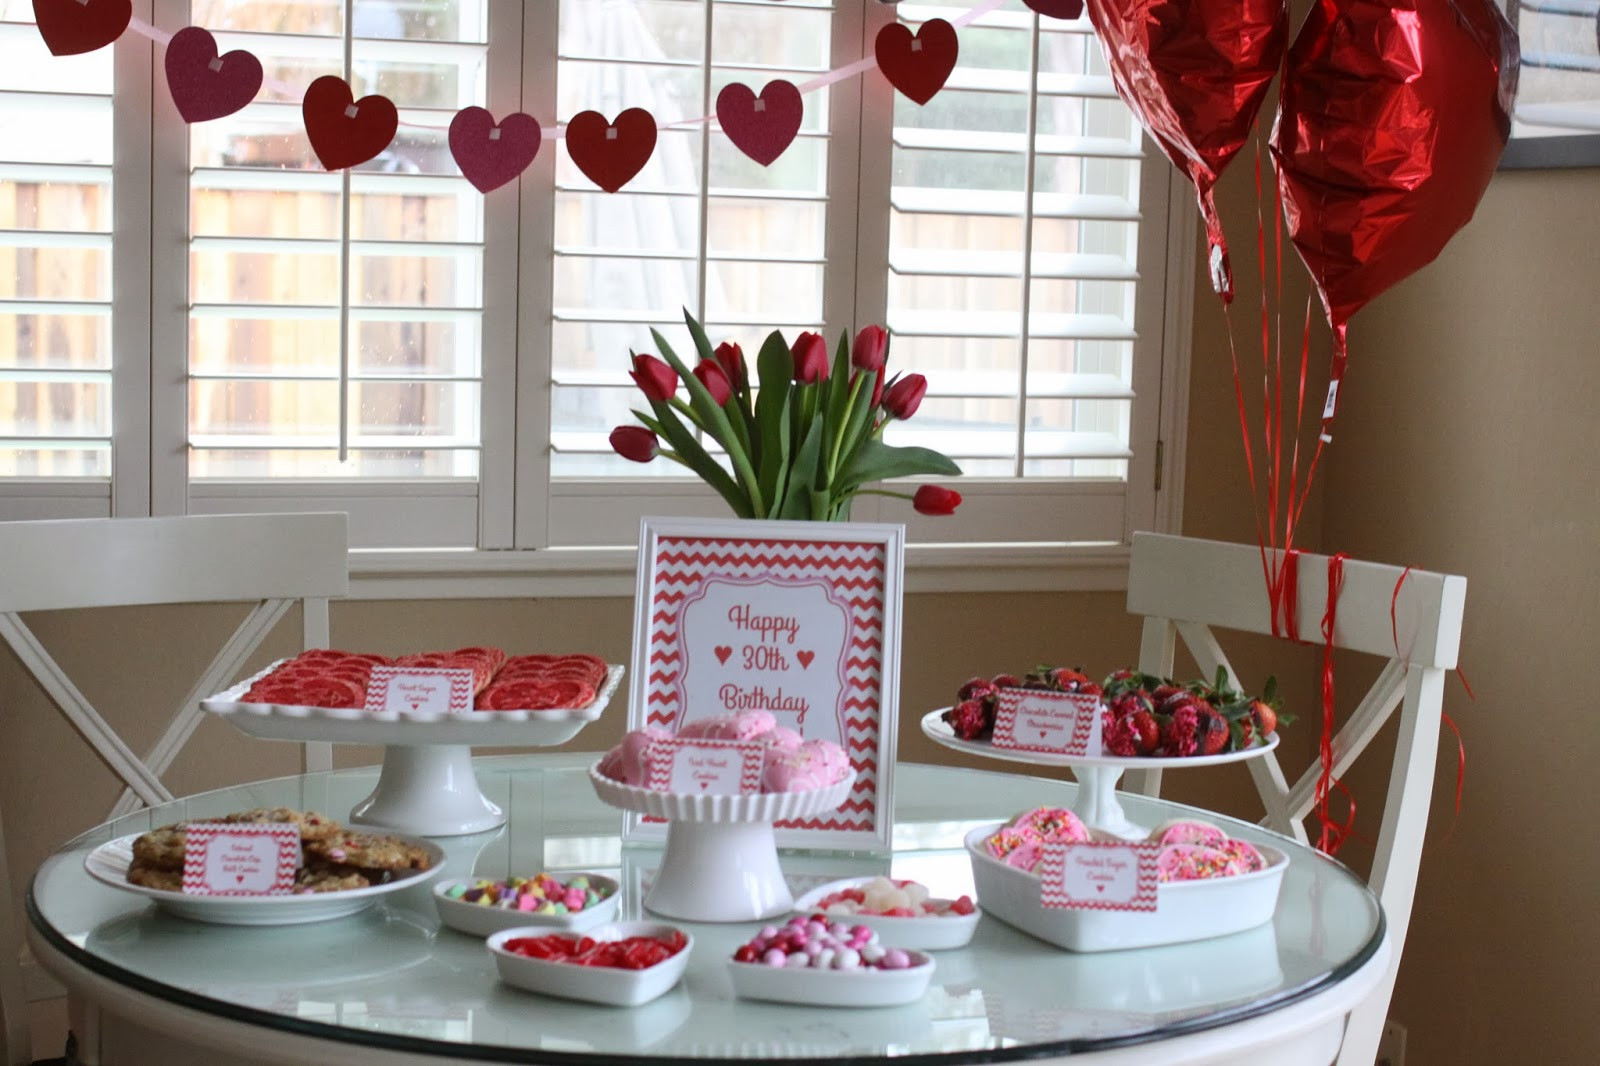 Best ideas about 30th Birthday Party Decorations . Save or Pin The Larson Lingo A 30th Birthday Party Heart Theme Now.